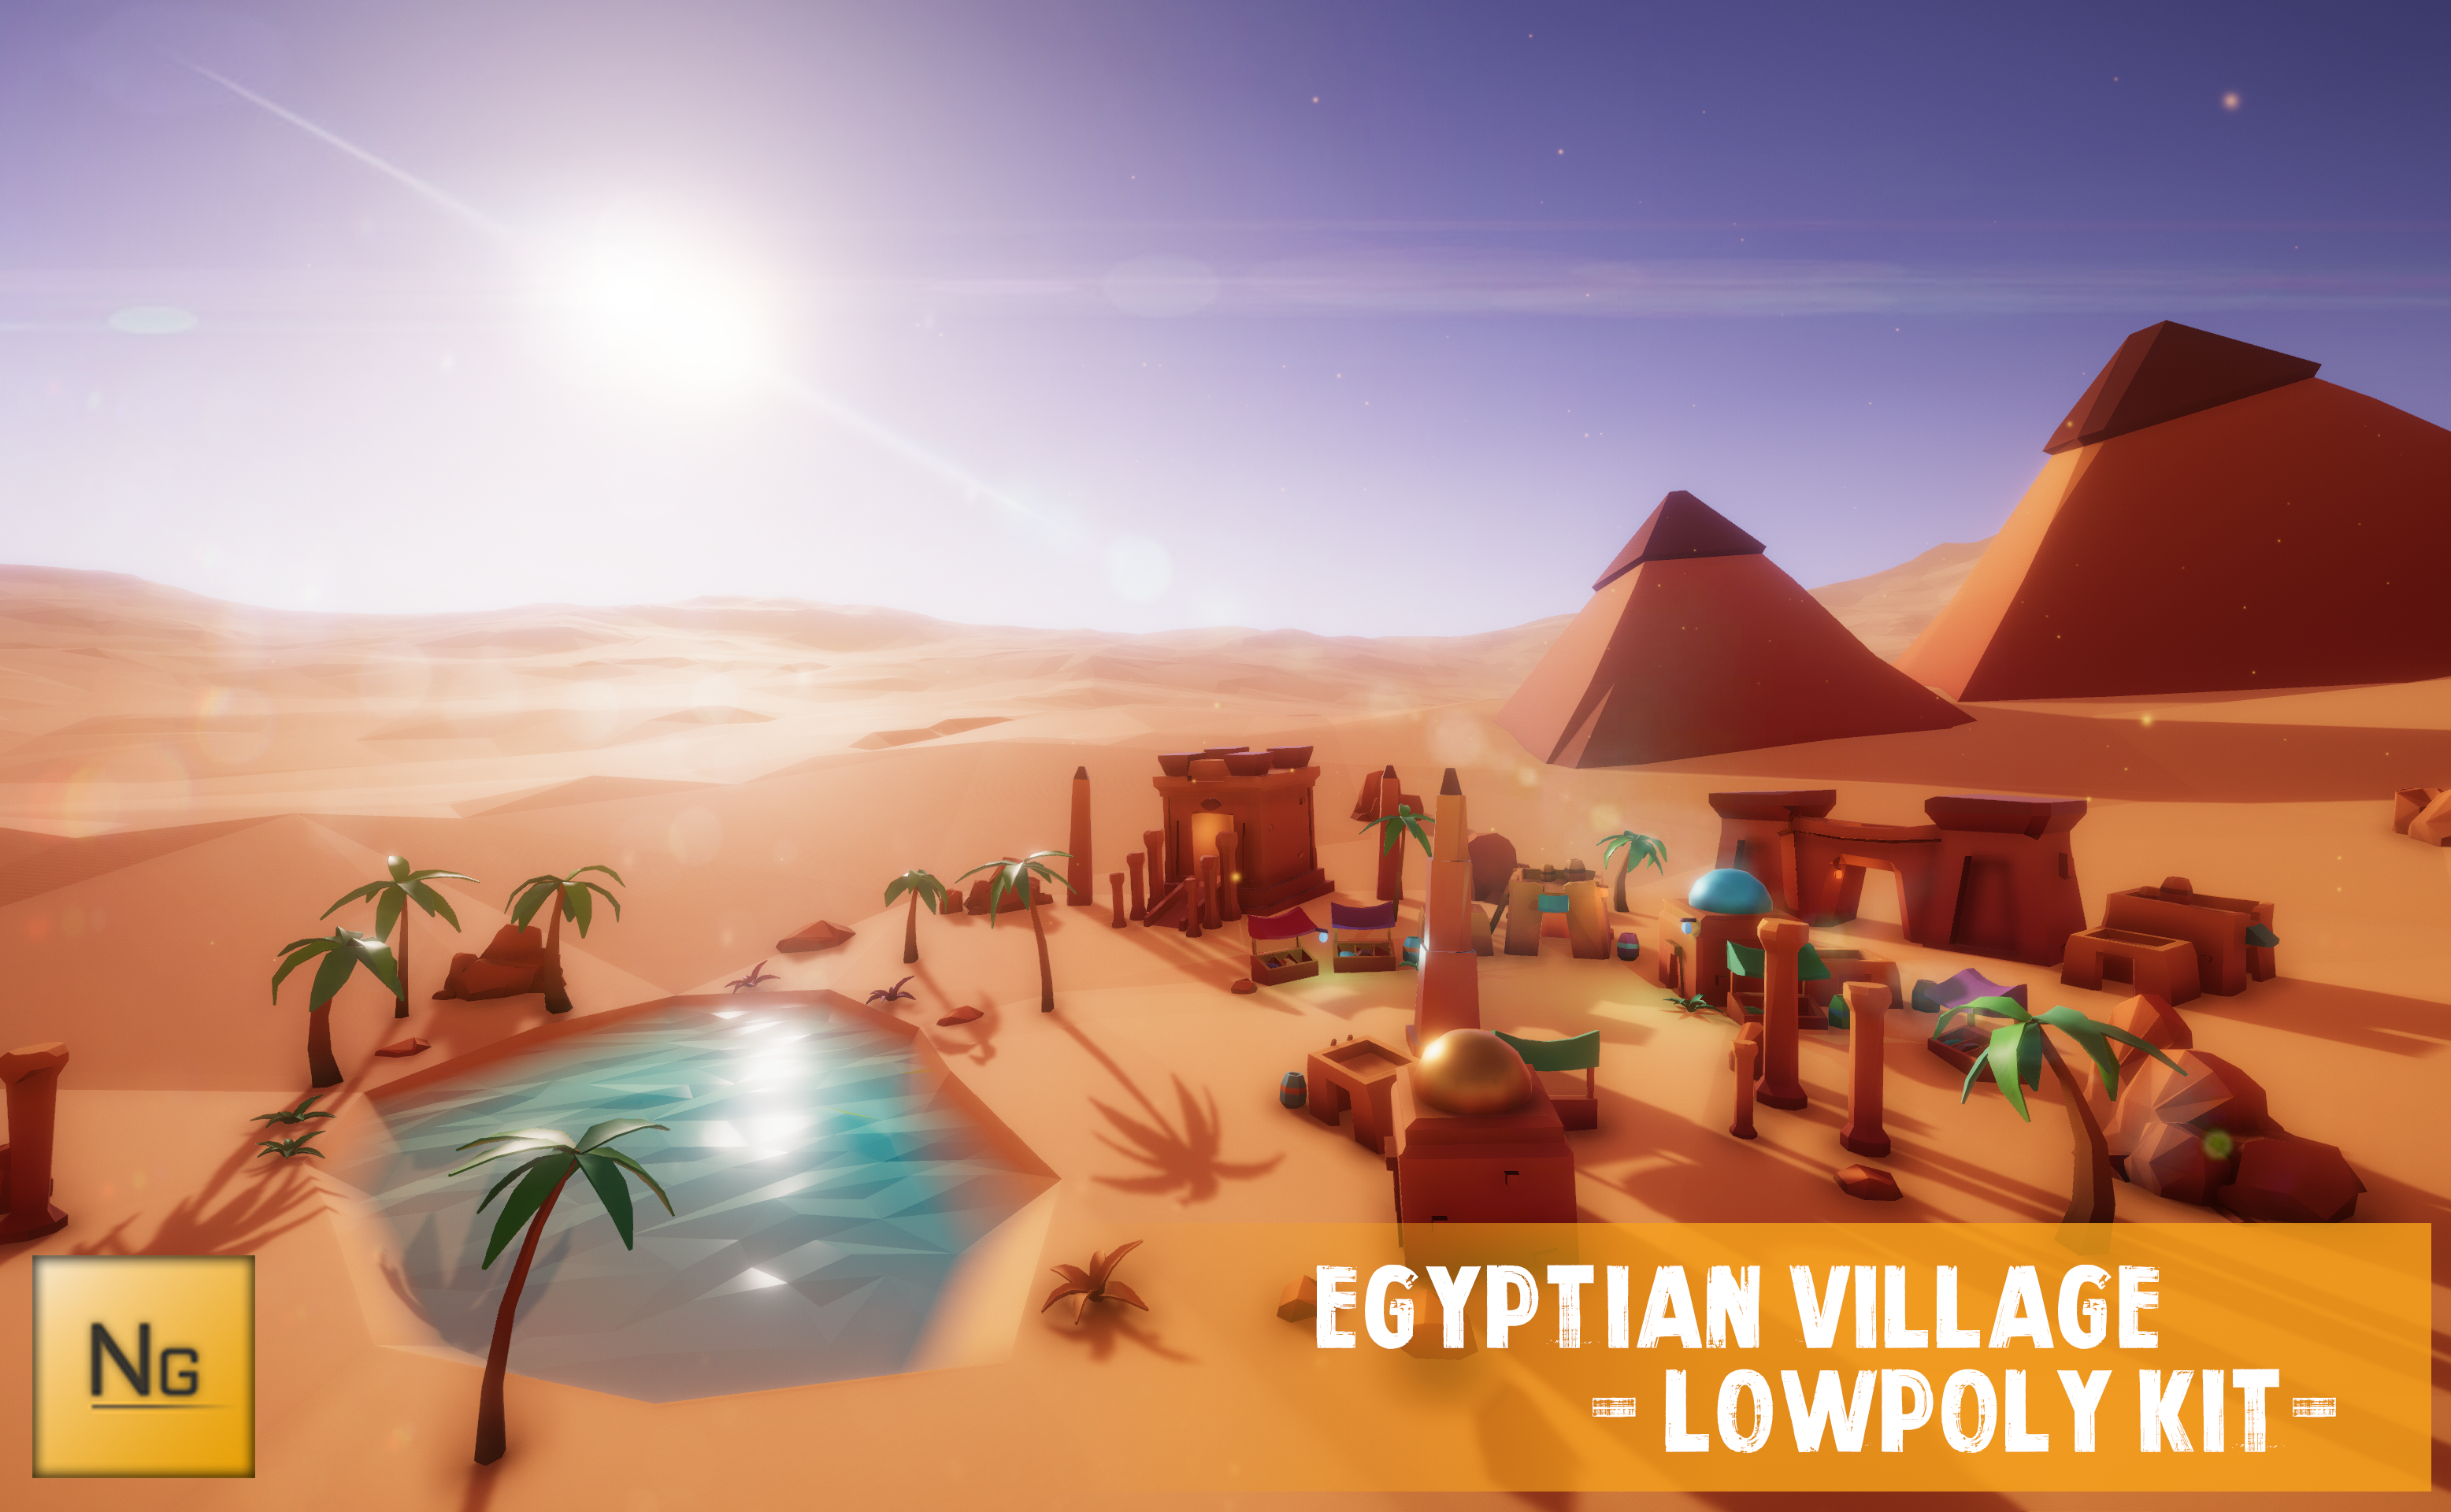 Egyptian village - LowPoly